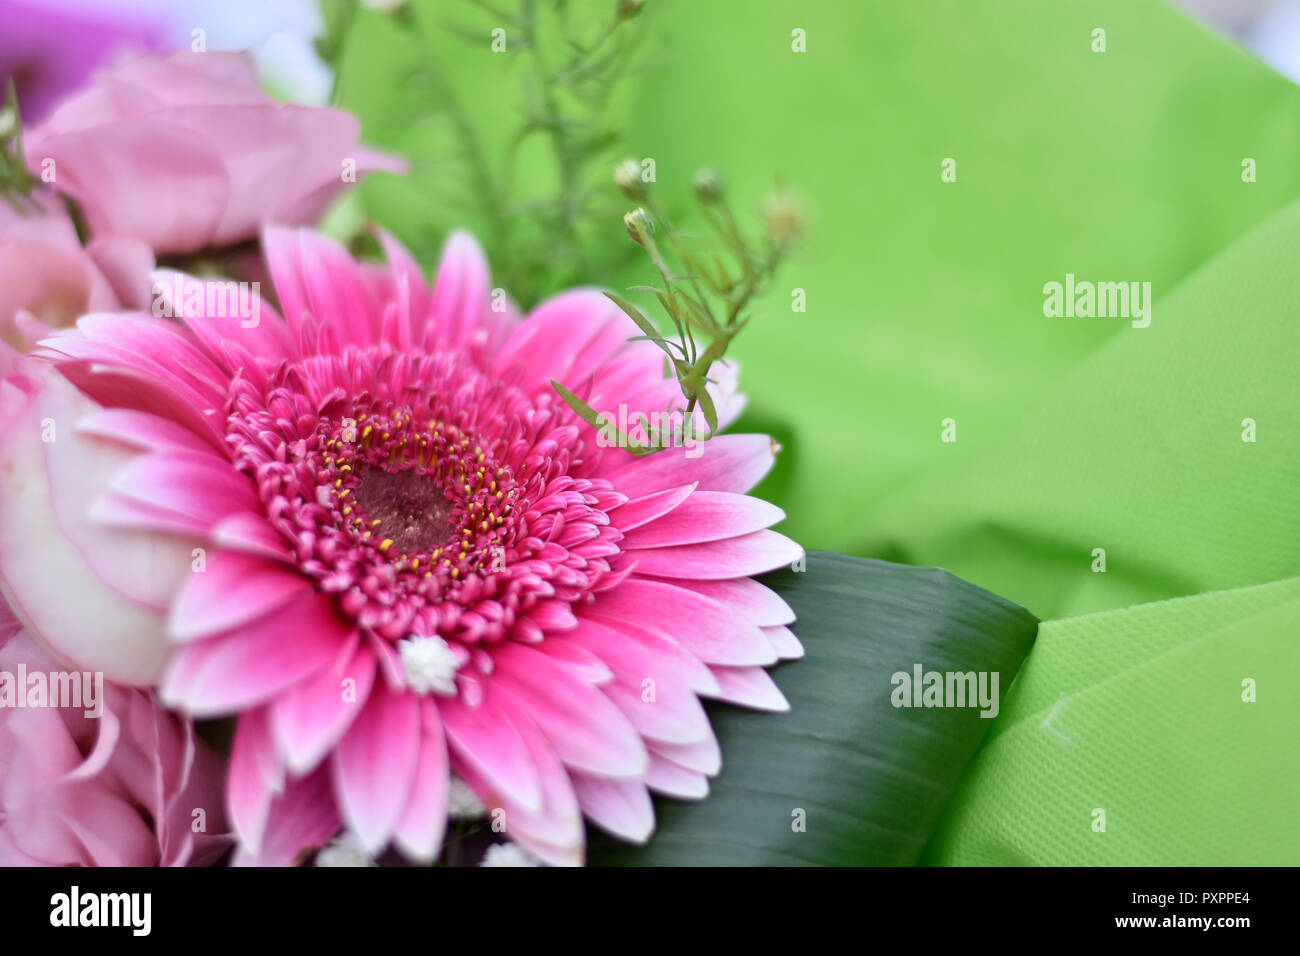 Flower composition. Florist concept - Stock Image